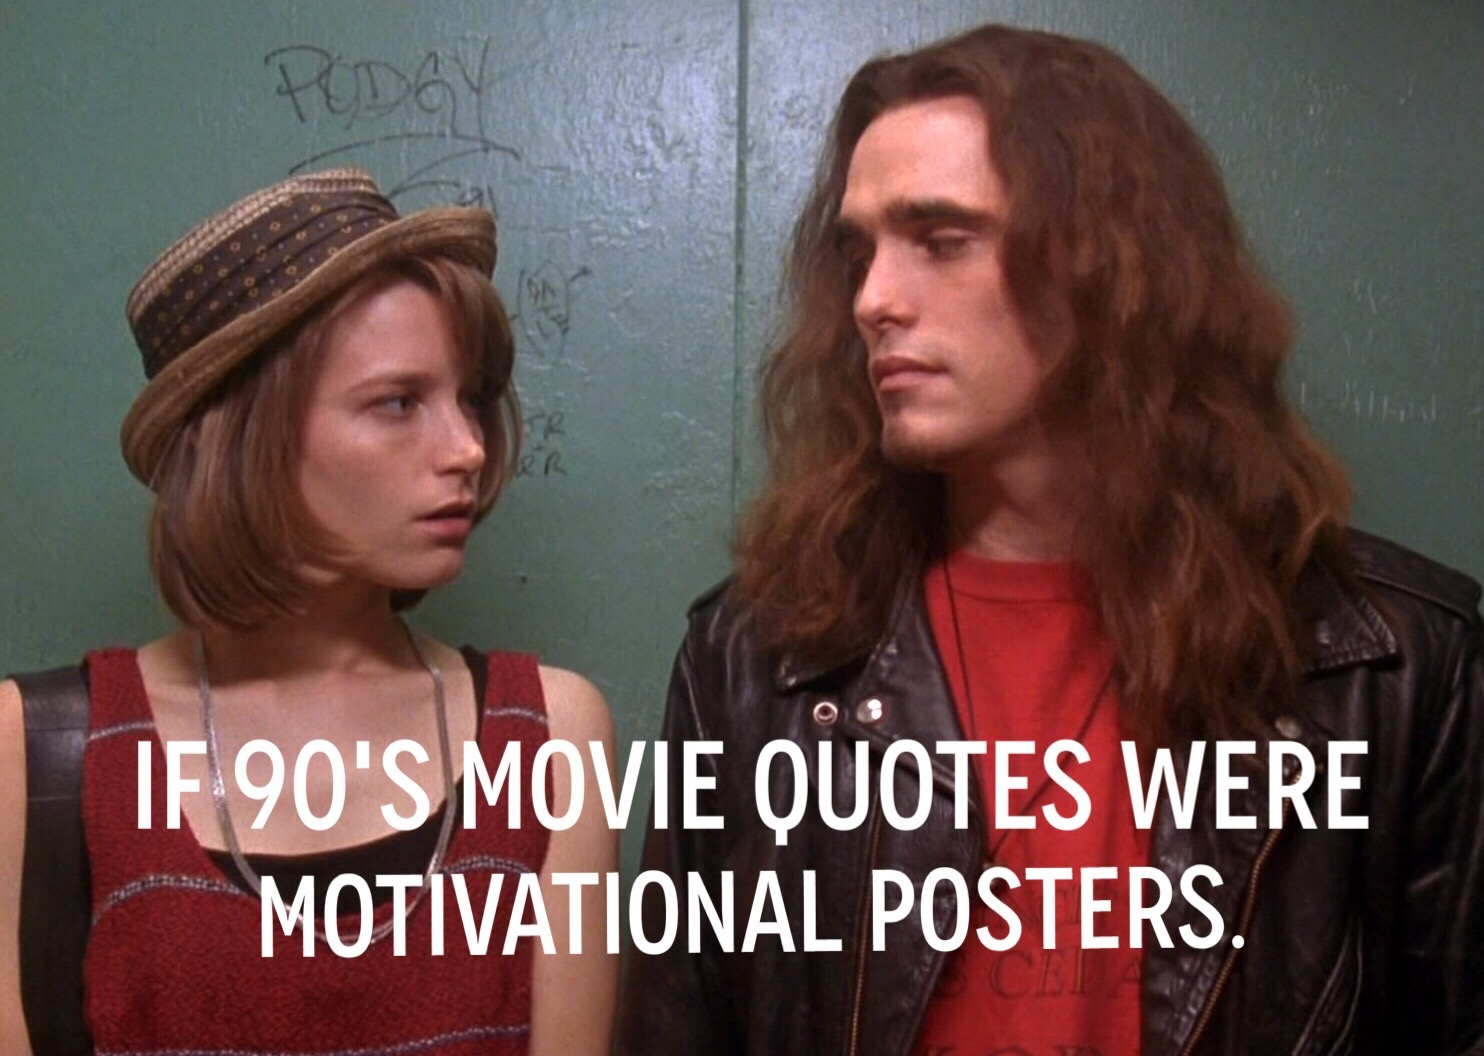 Movie Lines: If 90's Movie Quotes Were Motivational Posters